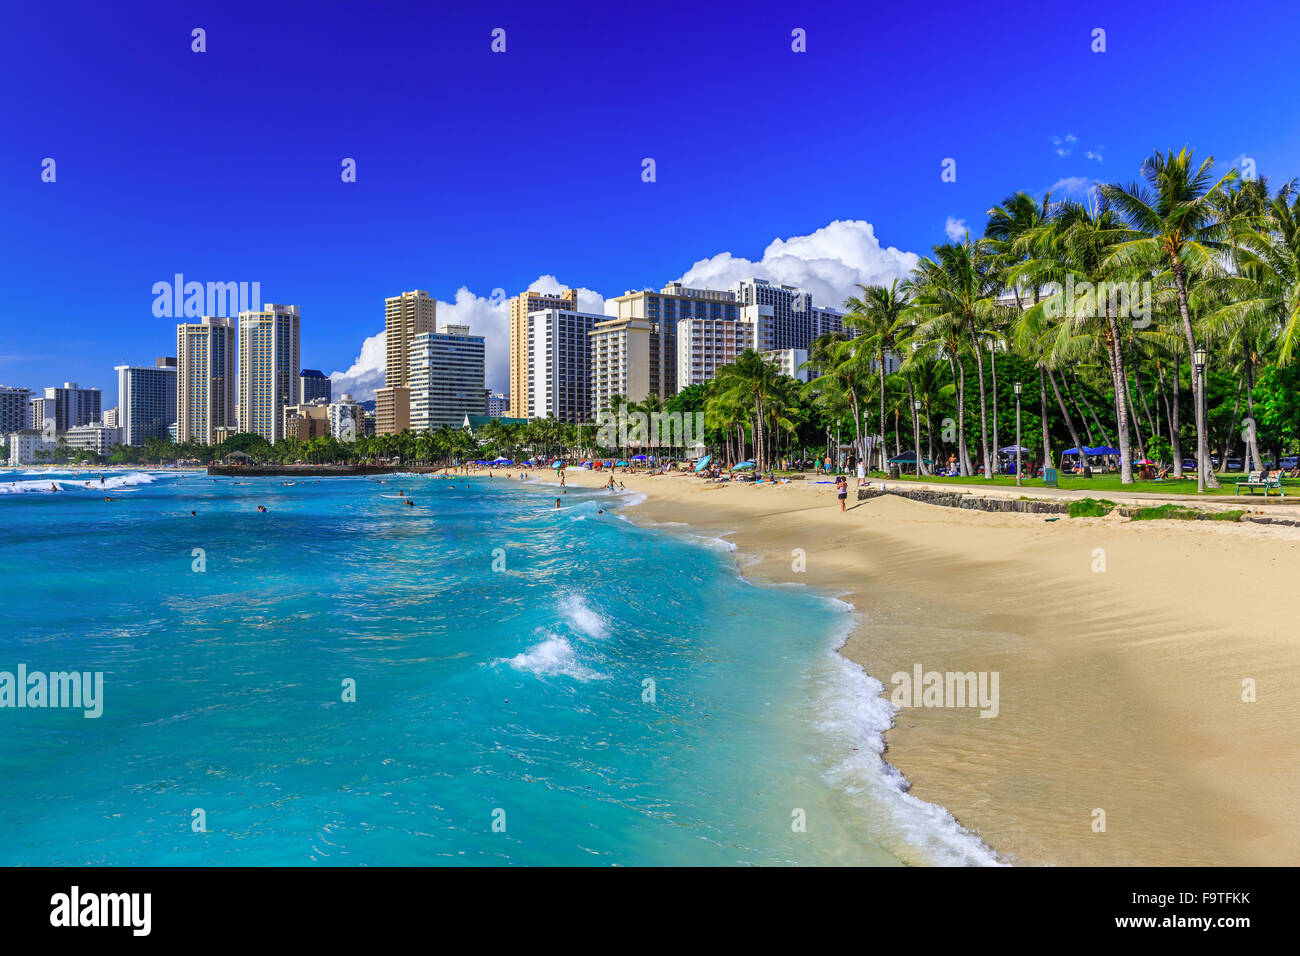 Honolulu, Hawaii. La plage de Waikiki et Honolulu. Photo Stock